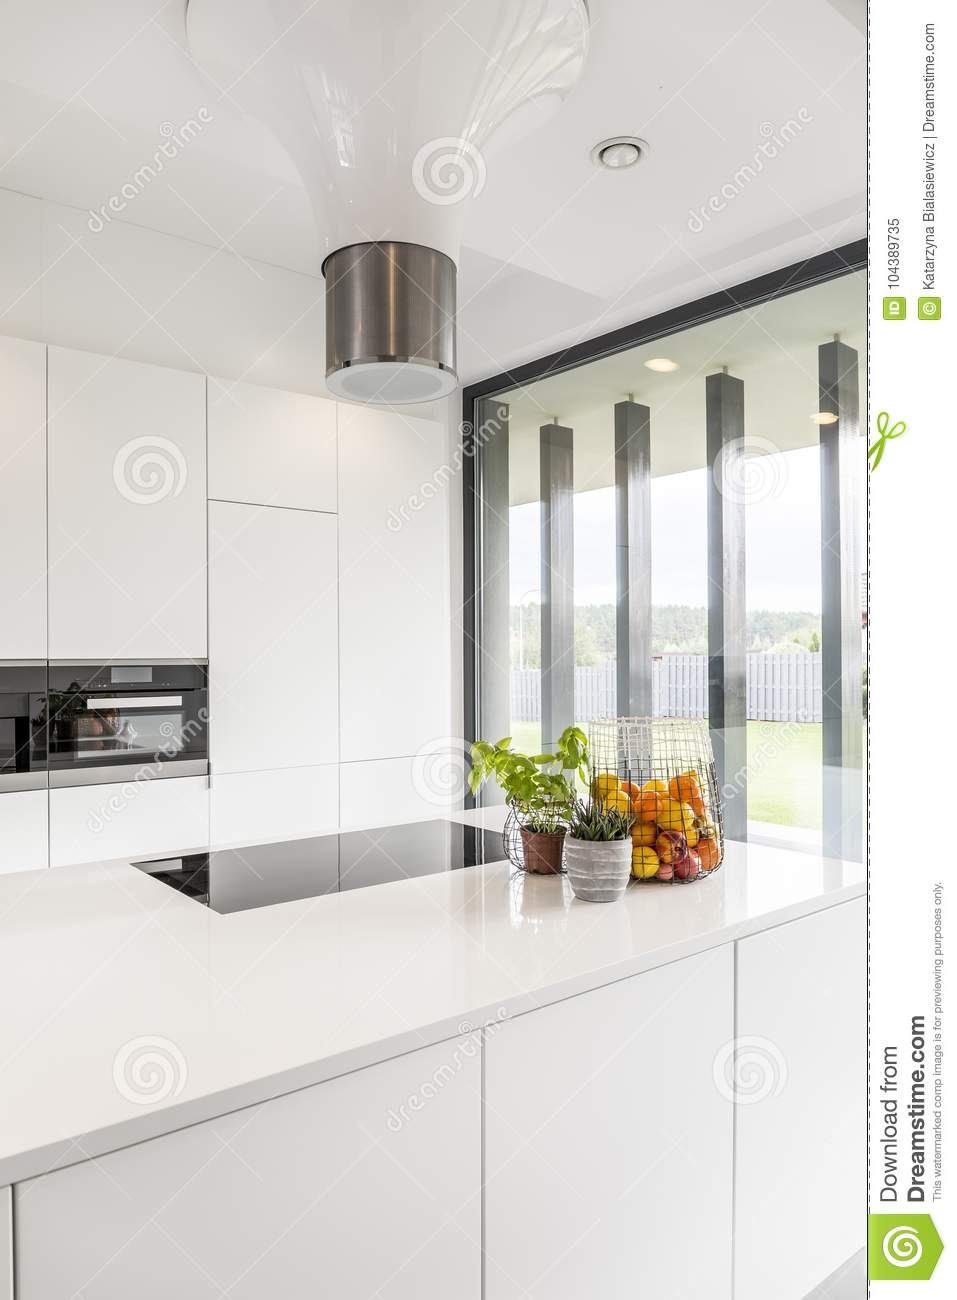 Fruits and plants stock image. Image of oven, natural - 104389735